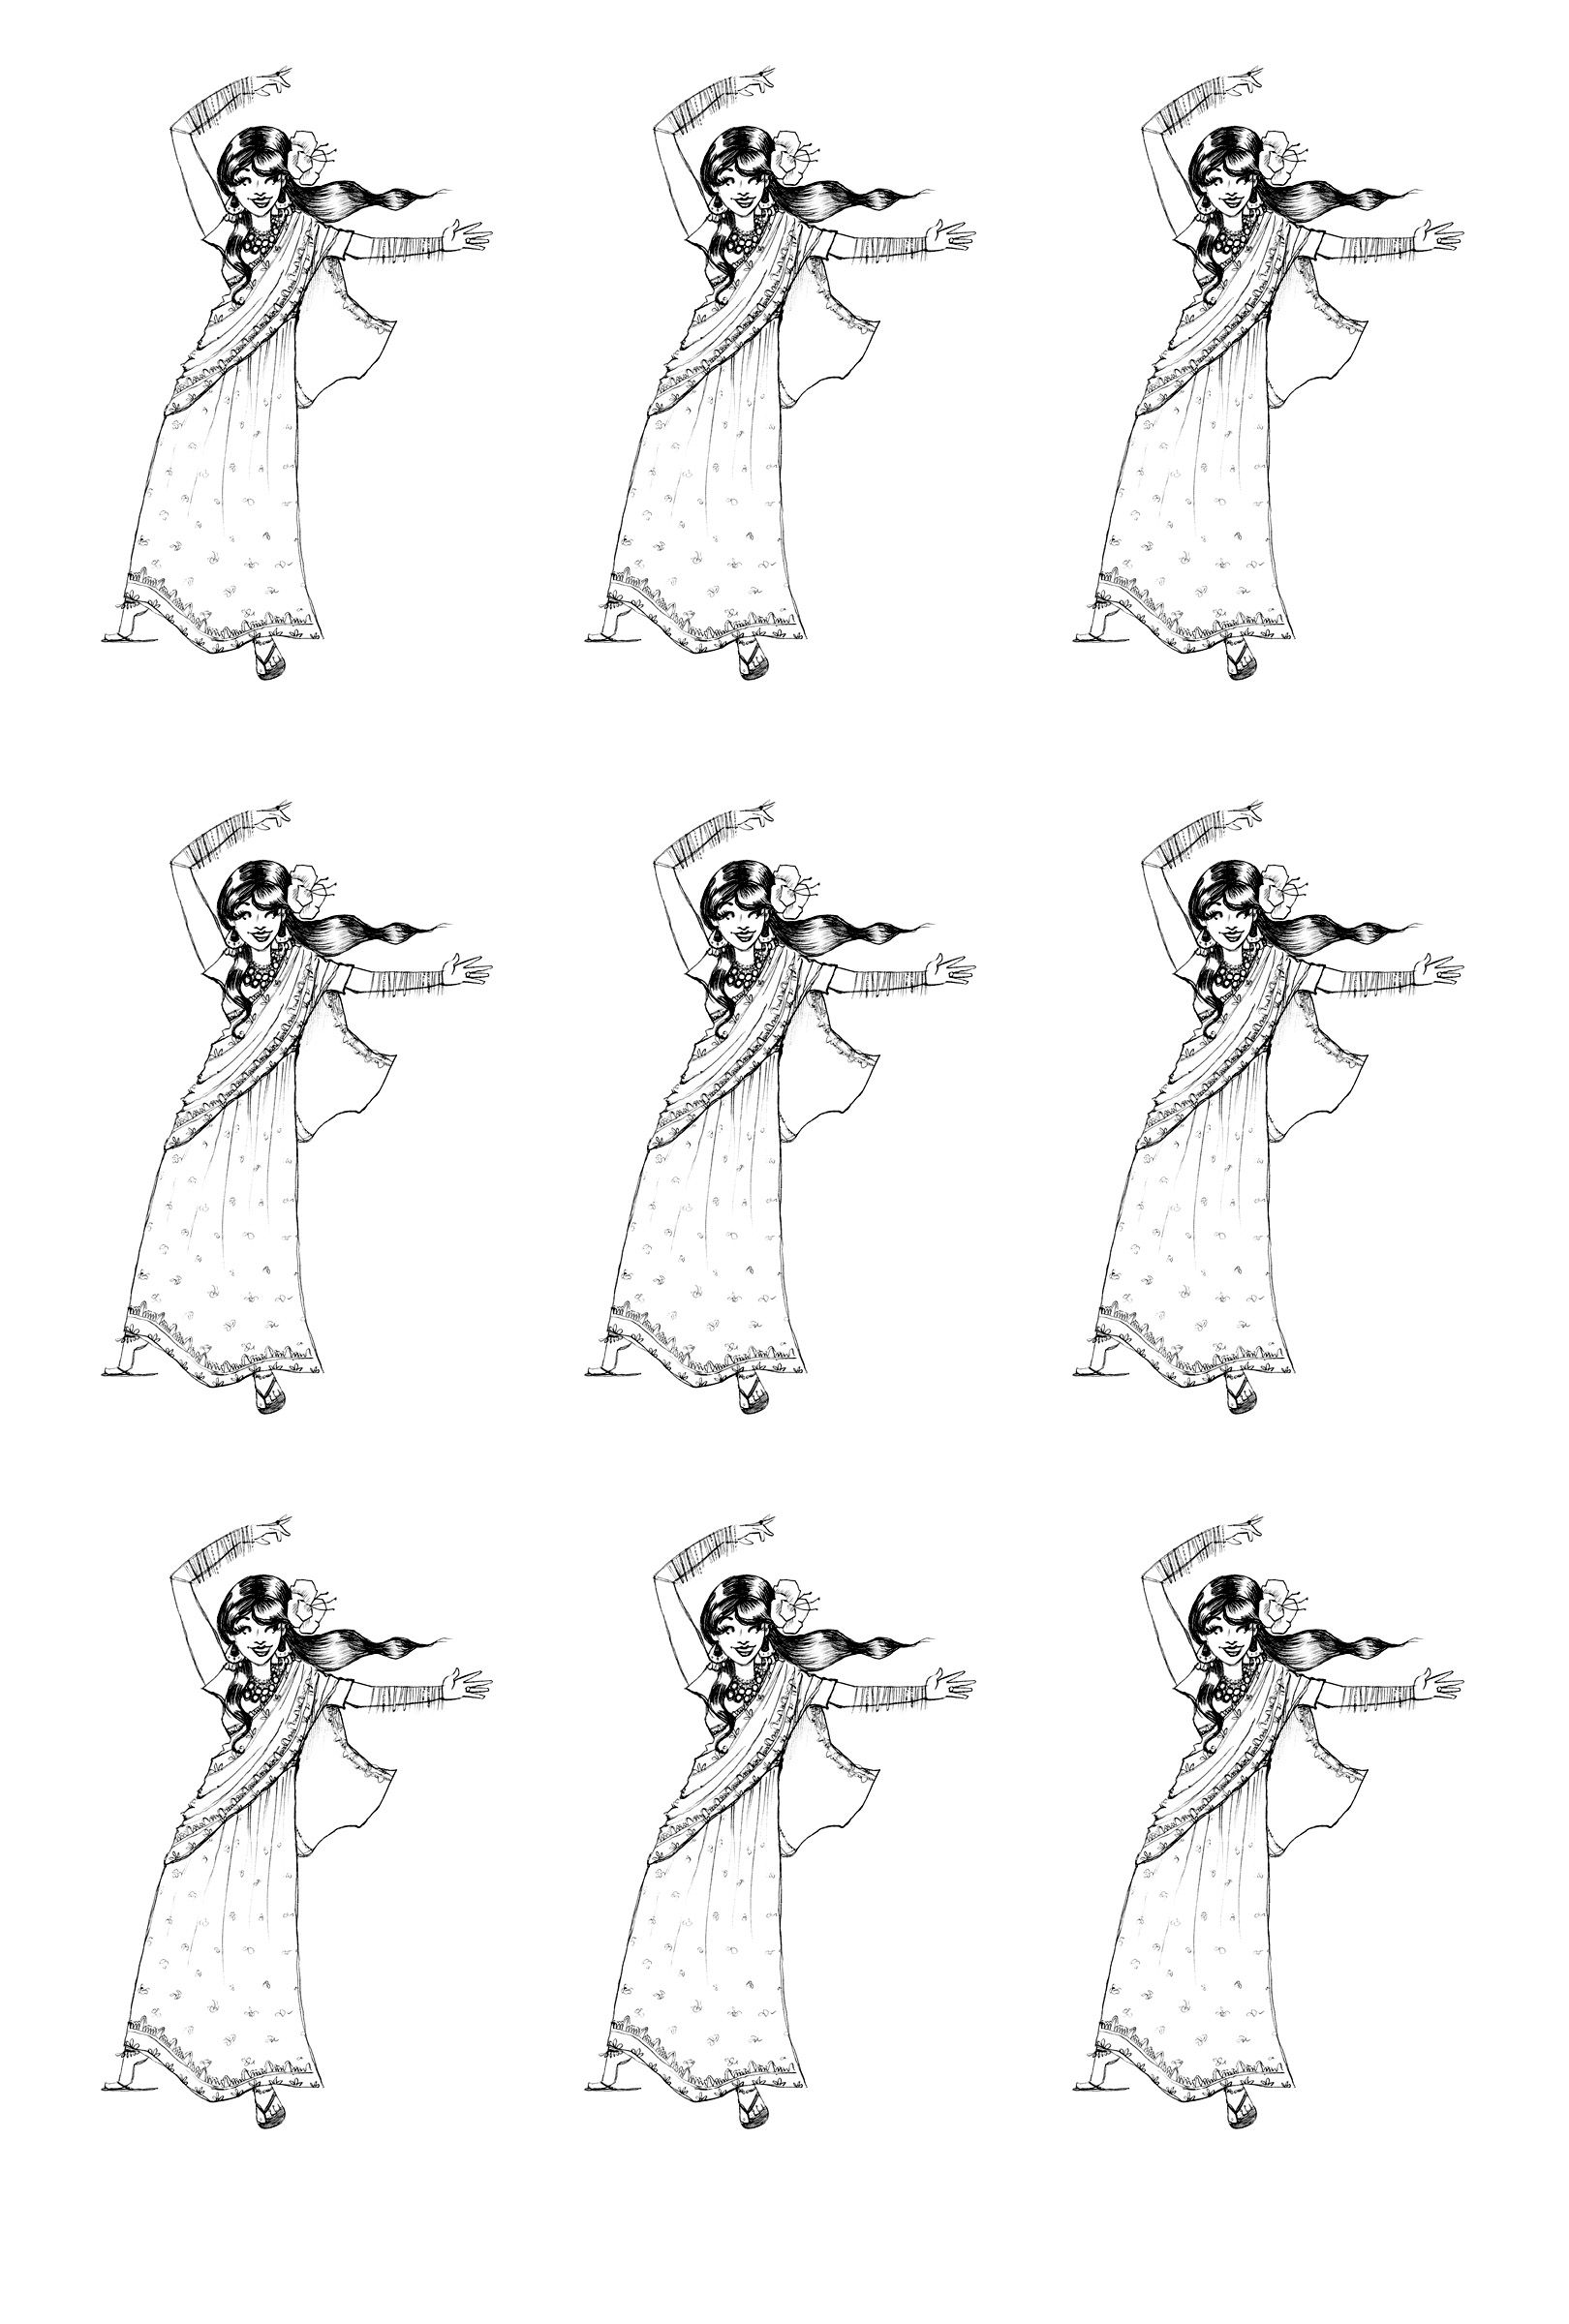 Coloriage A Imprimer Danseuse Indienne.Free Coloring Page Coloriage Inde Bollywood Danse